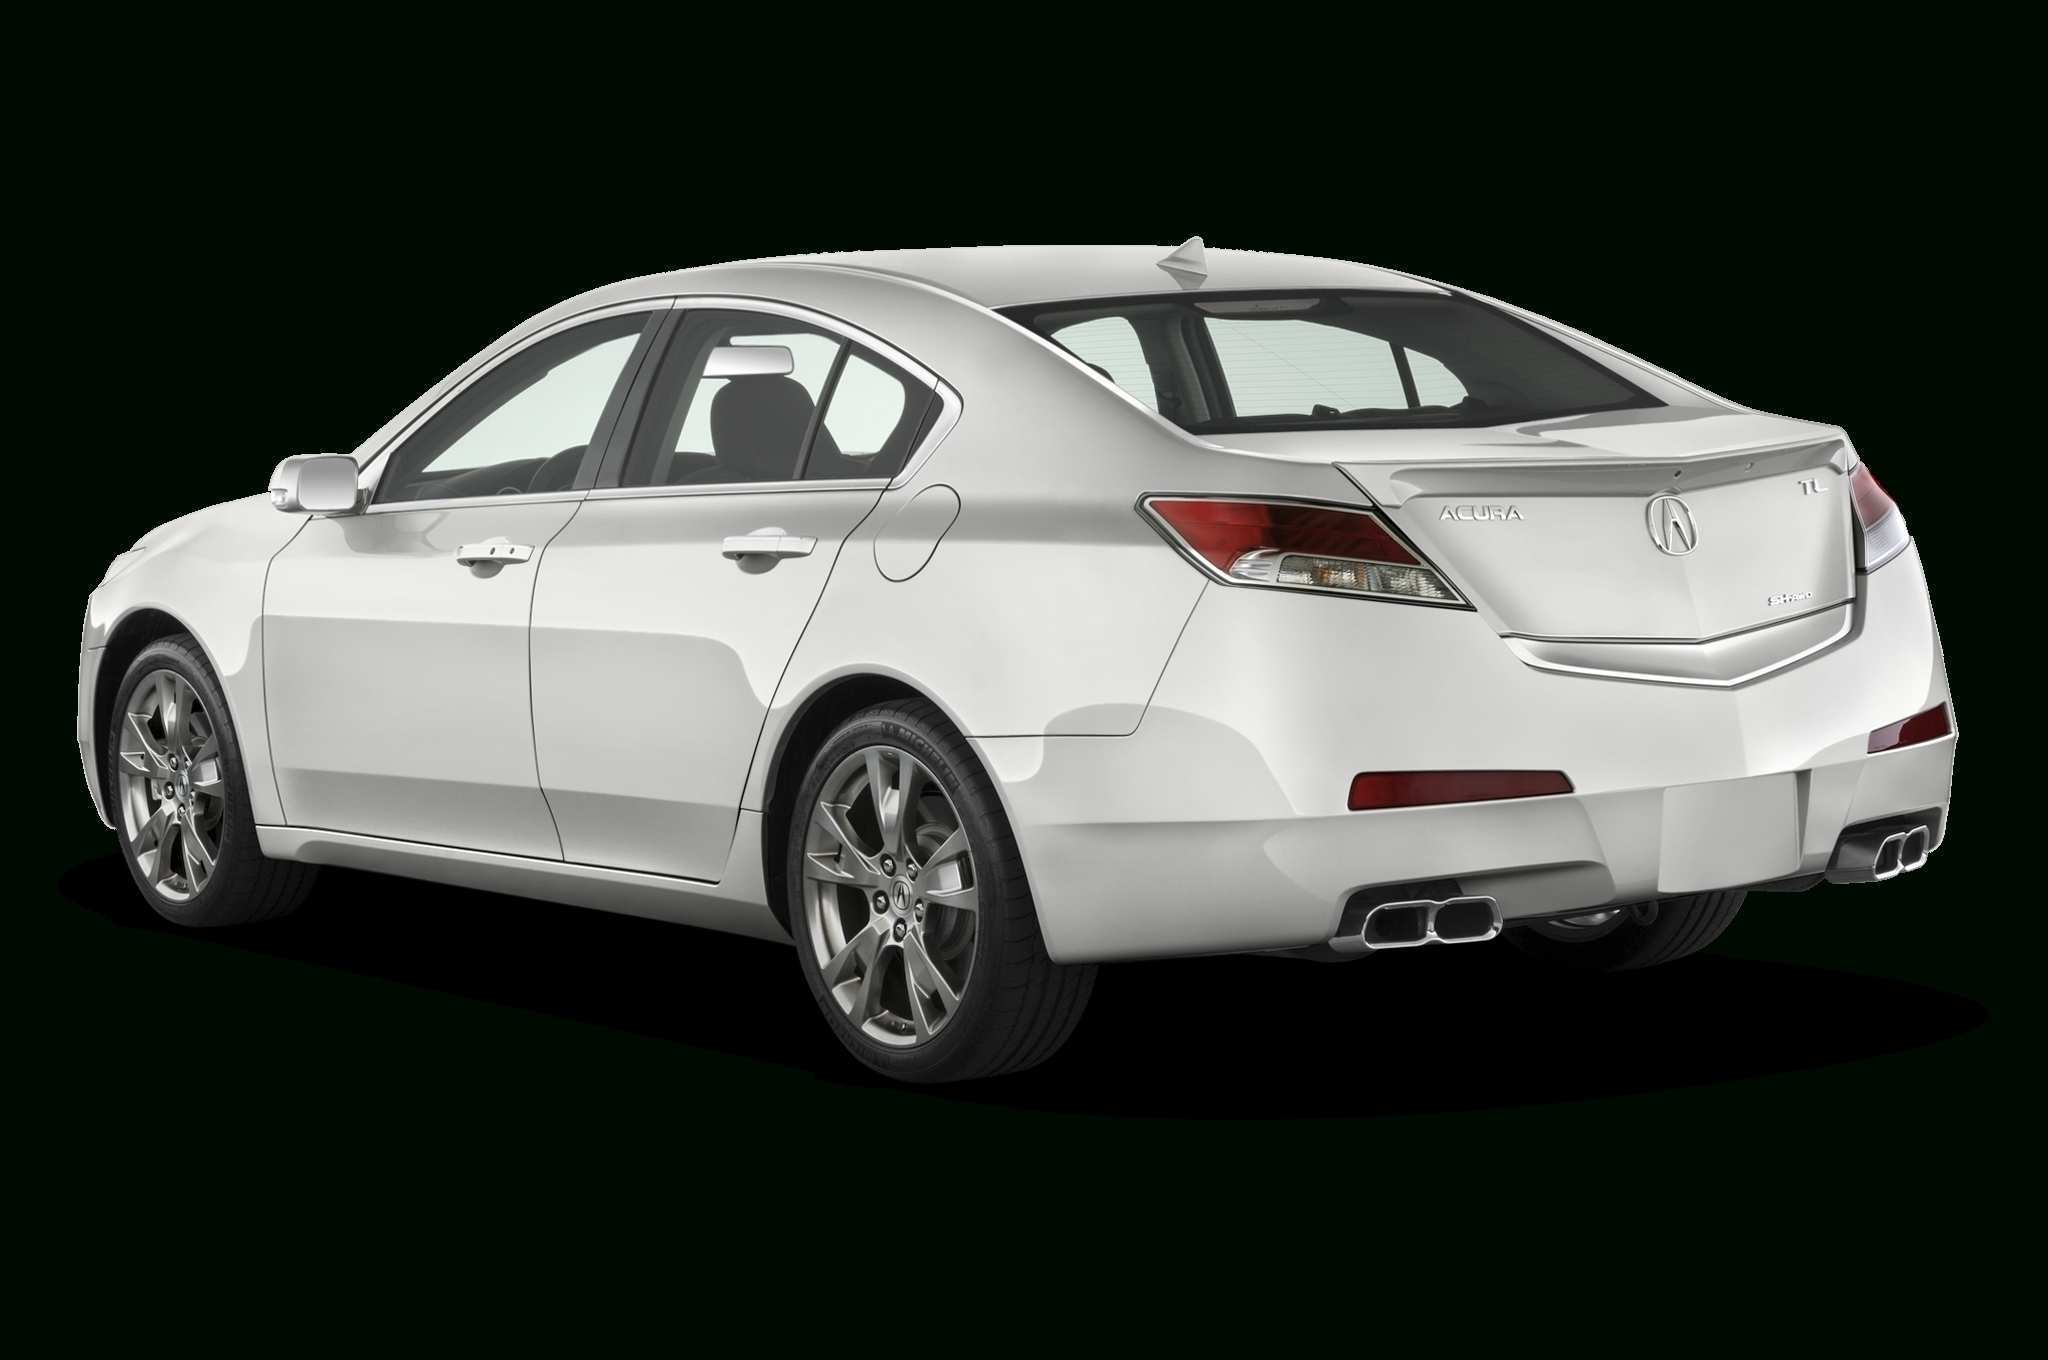 53 New 2019 Acura Tl Pictures